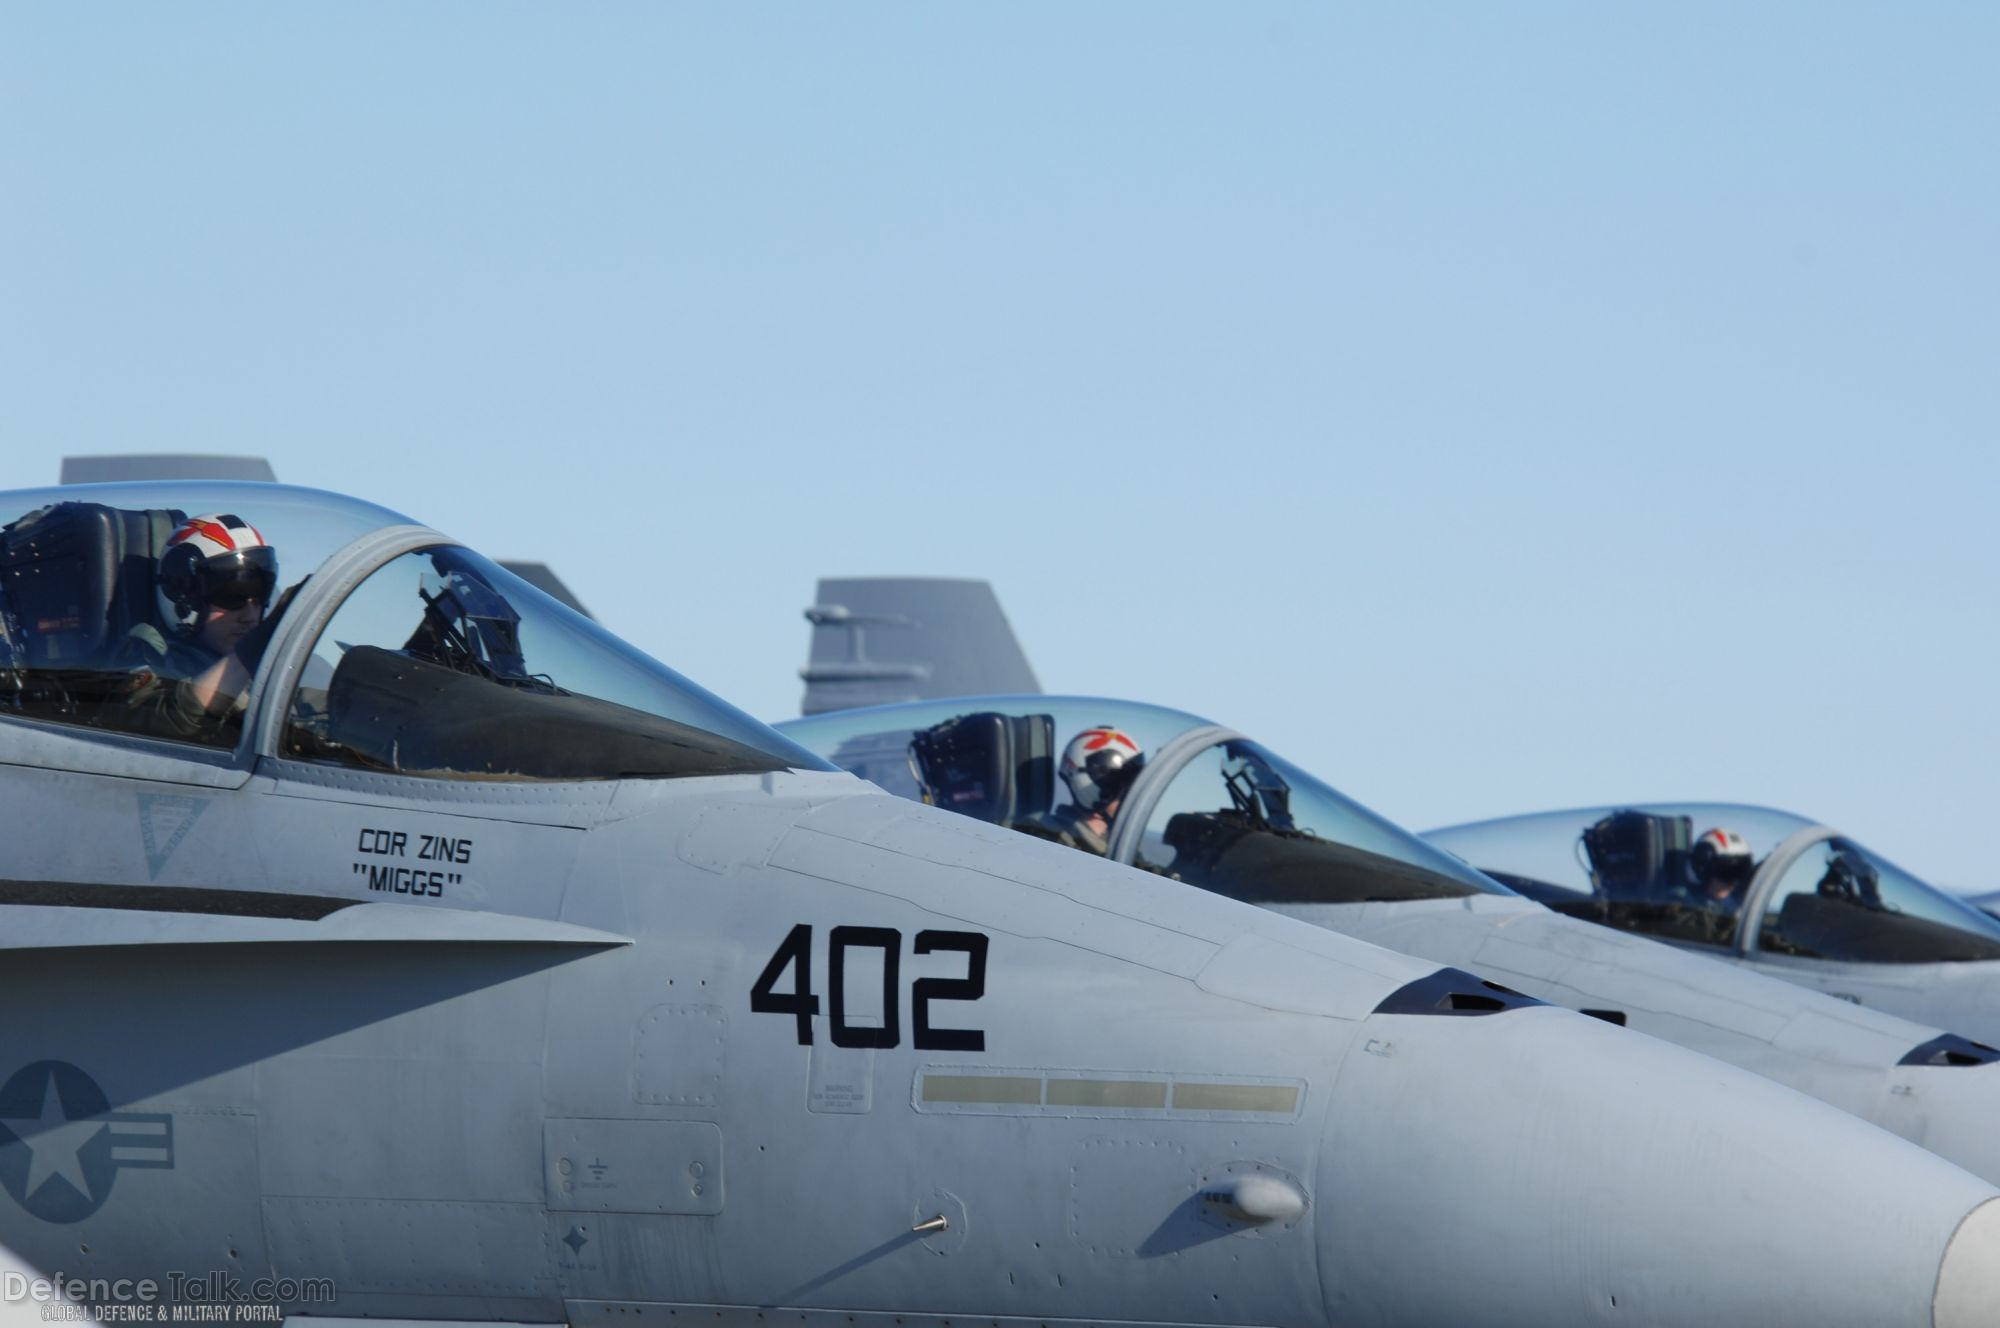 Three Navy F/A-18 pilots - US Air Force Exercise